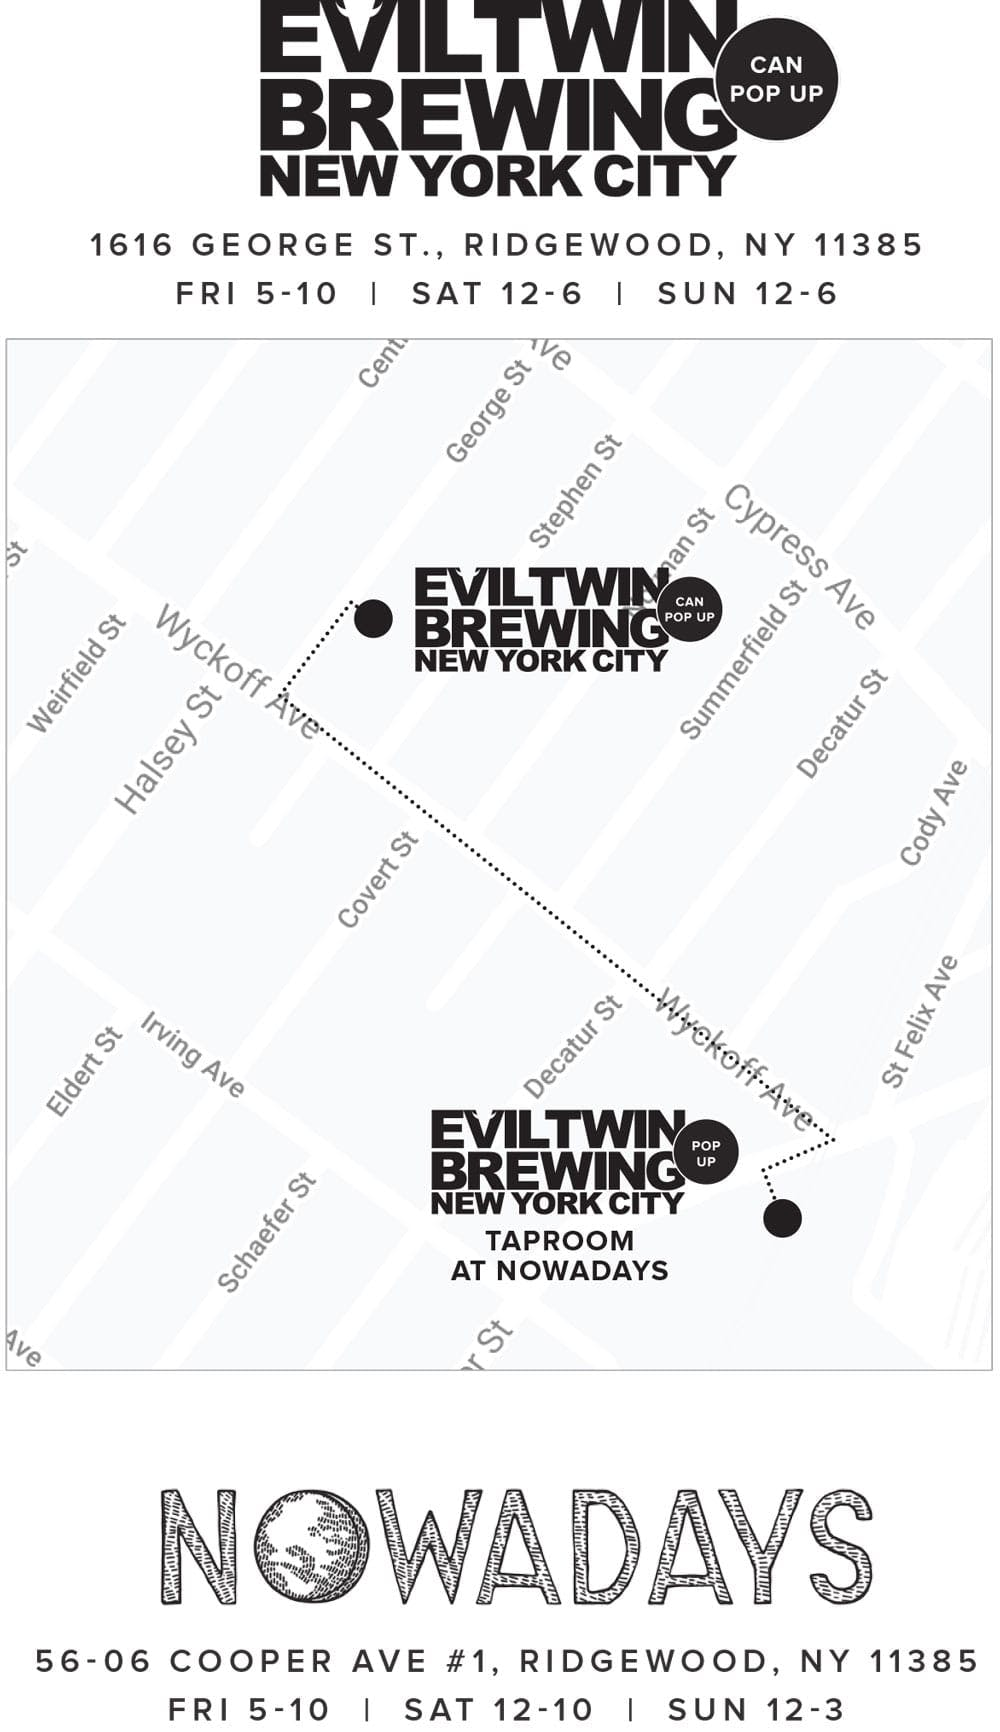 ETNYC_can_popup_postcard_5x7in-1